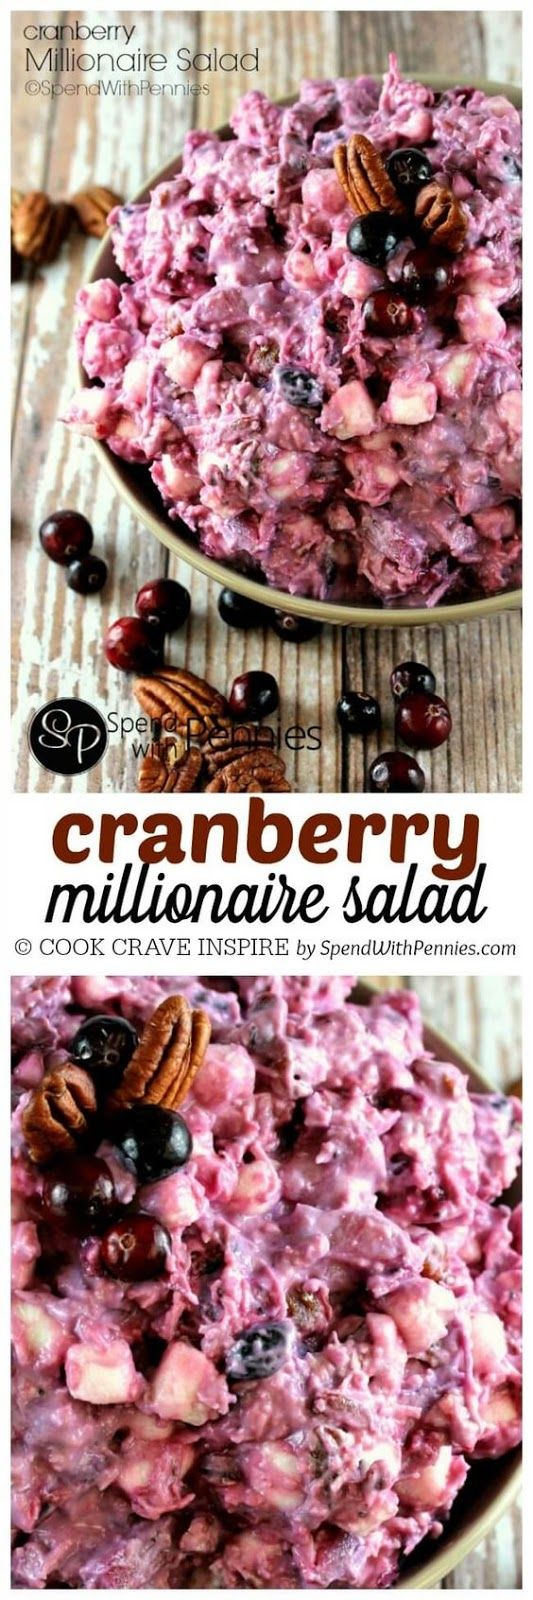 Cranberry Millionaire Salad Recipe Best Thanksgiving Recipes Tasty Dishes Cranberry Recipes